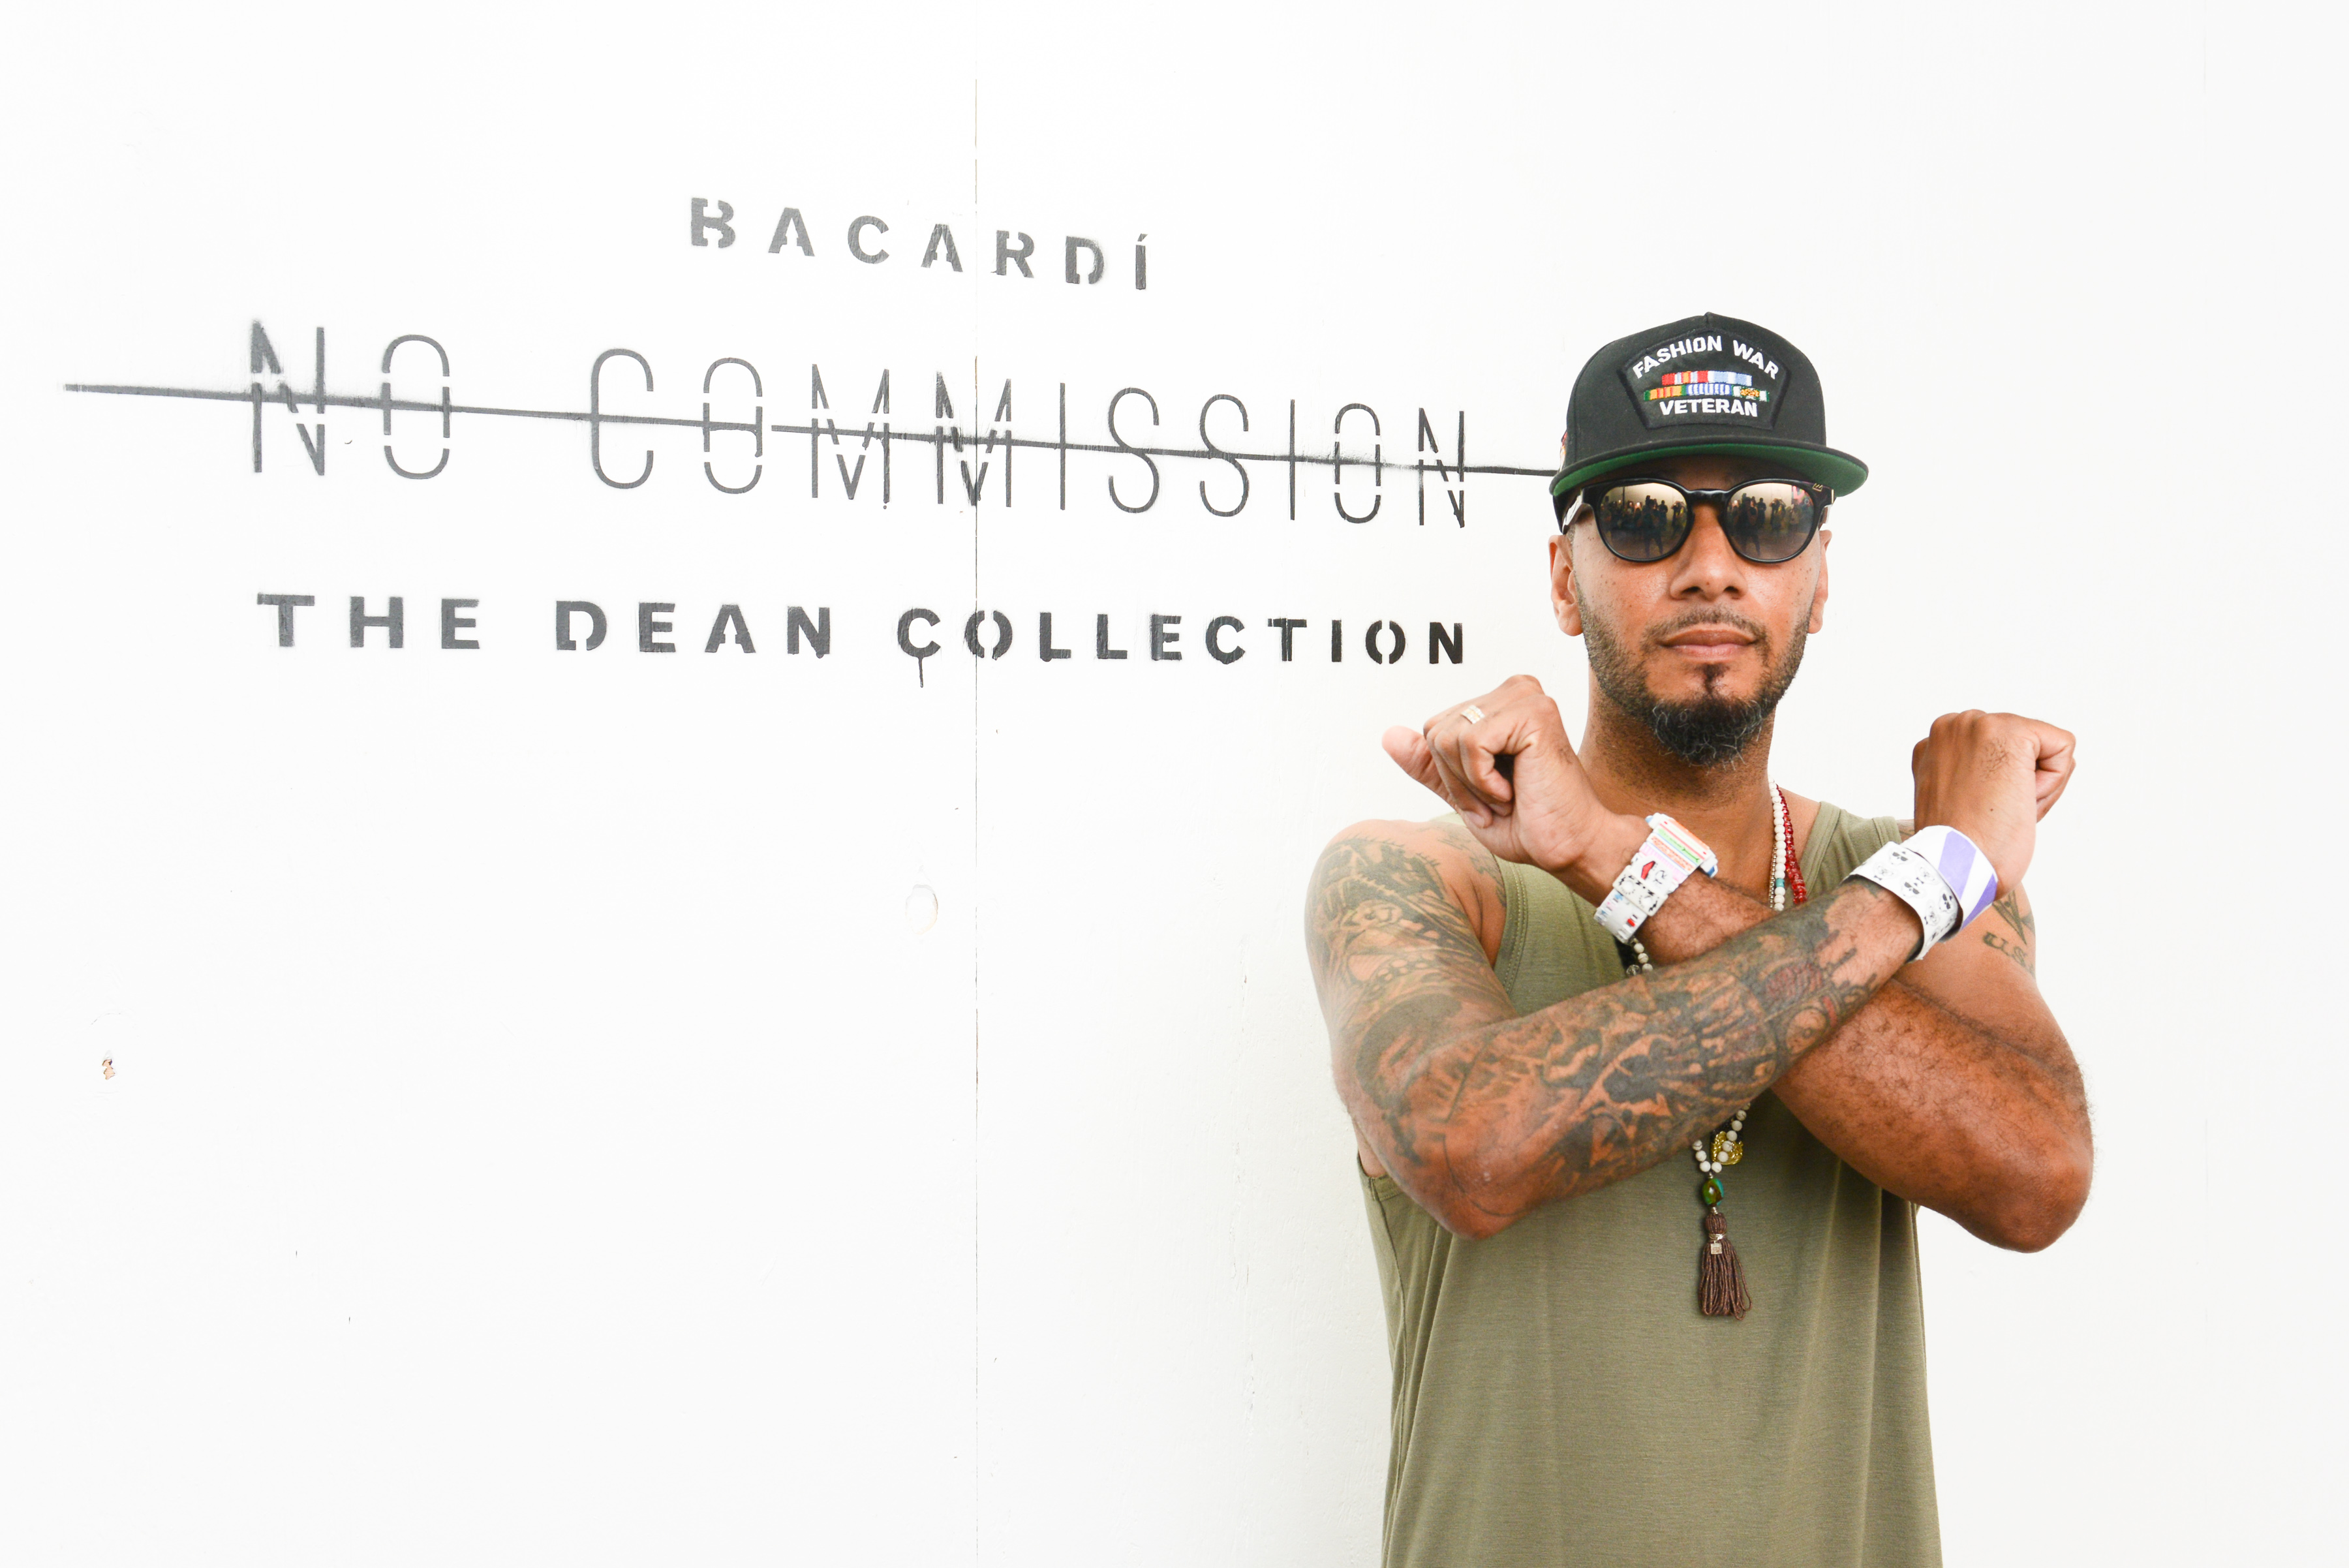 Swiss Beatz BACARDI and The Dean Collection Present No Commission: Art